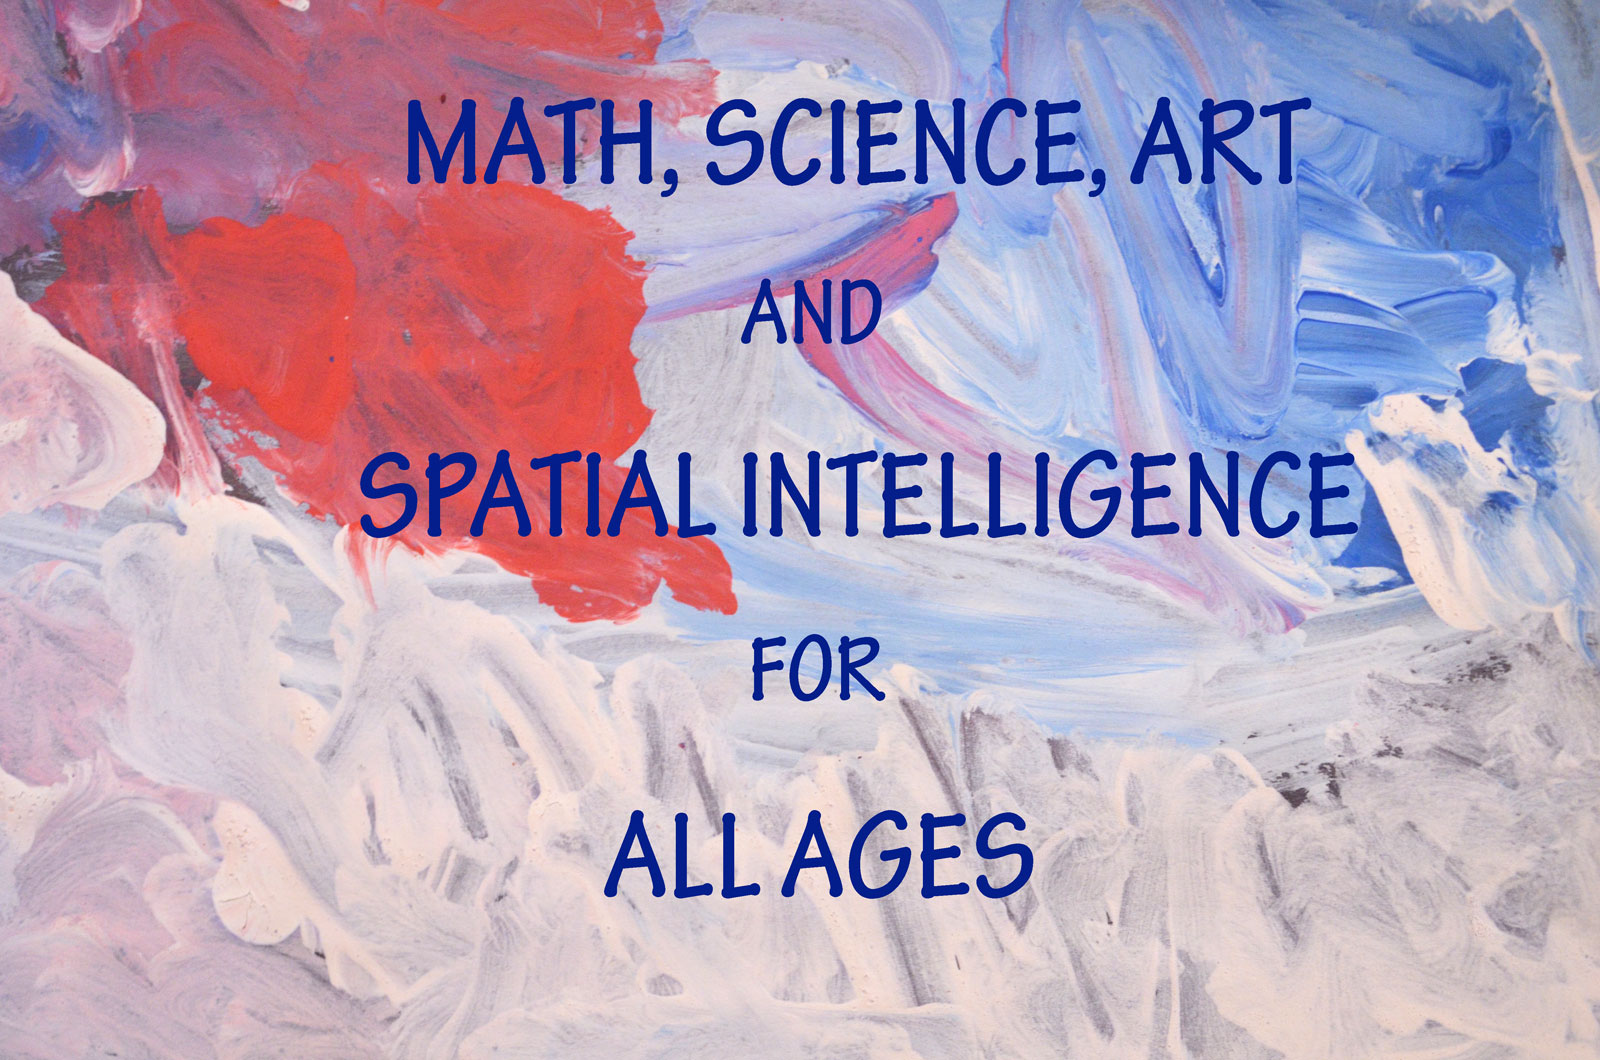 14 Strategies to Improve Learning in Science, Math, and Art